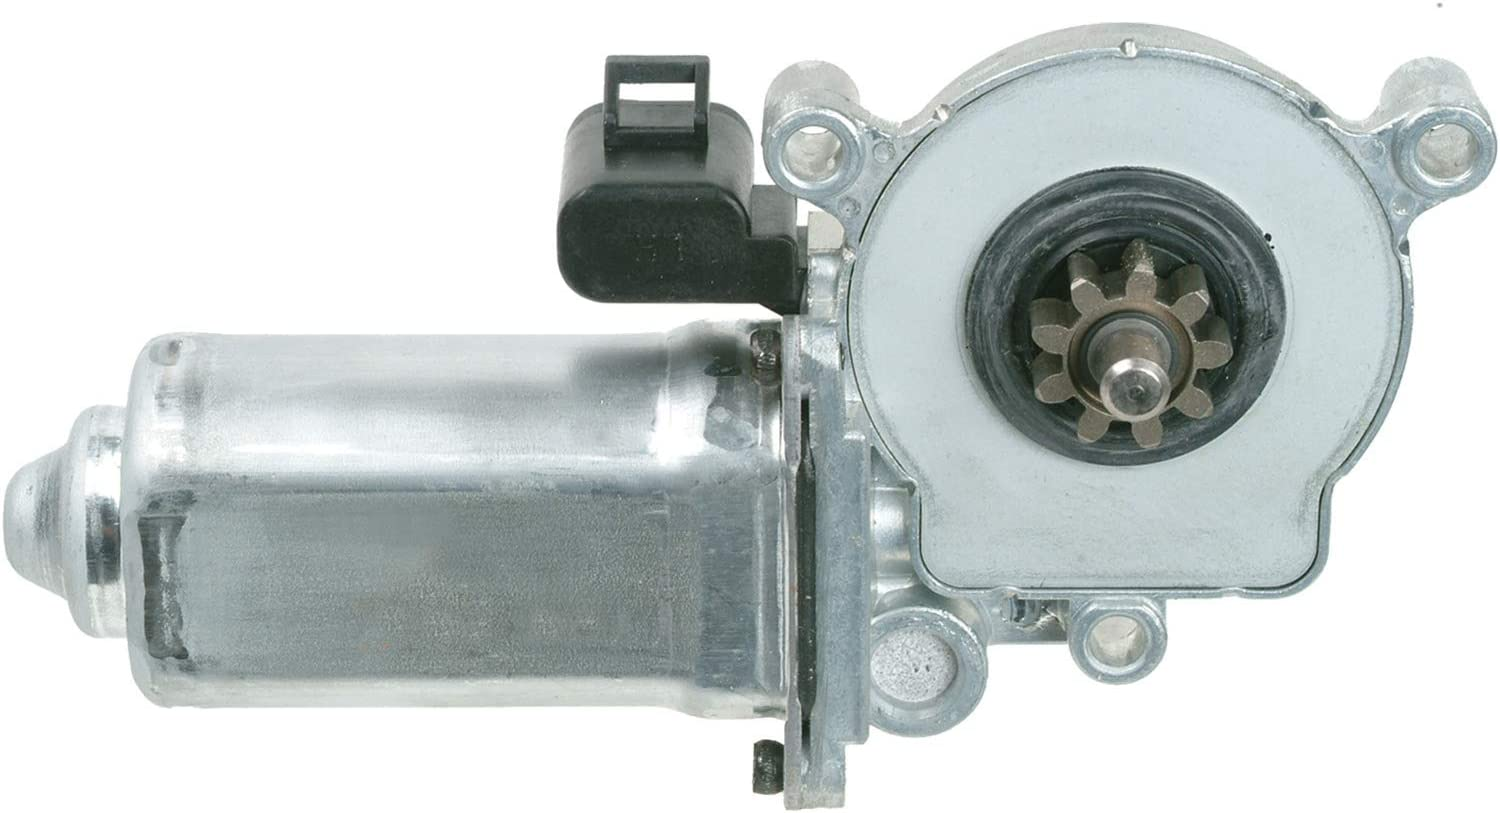 Cardone 42-1001 Remanufactured Power Bombing free shipping Motor Window Lift Opening large release sale